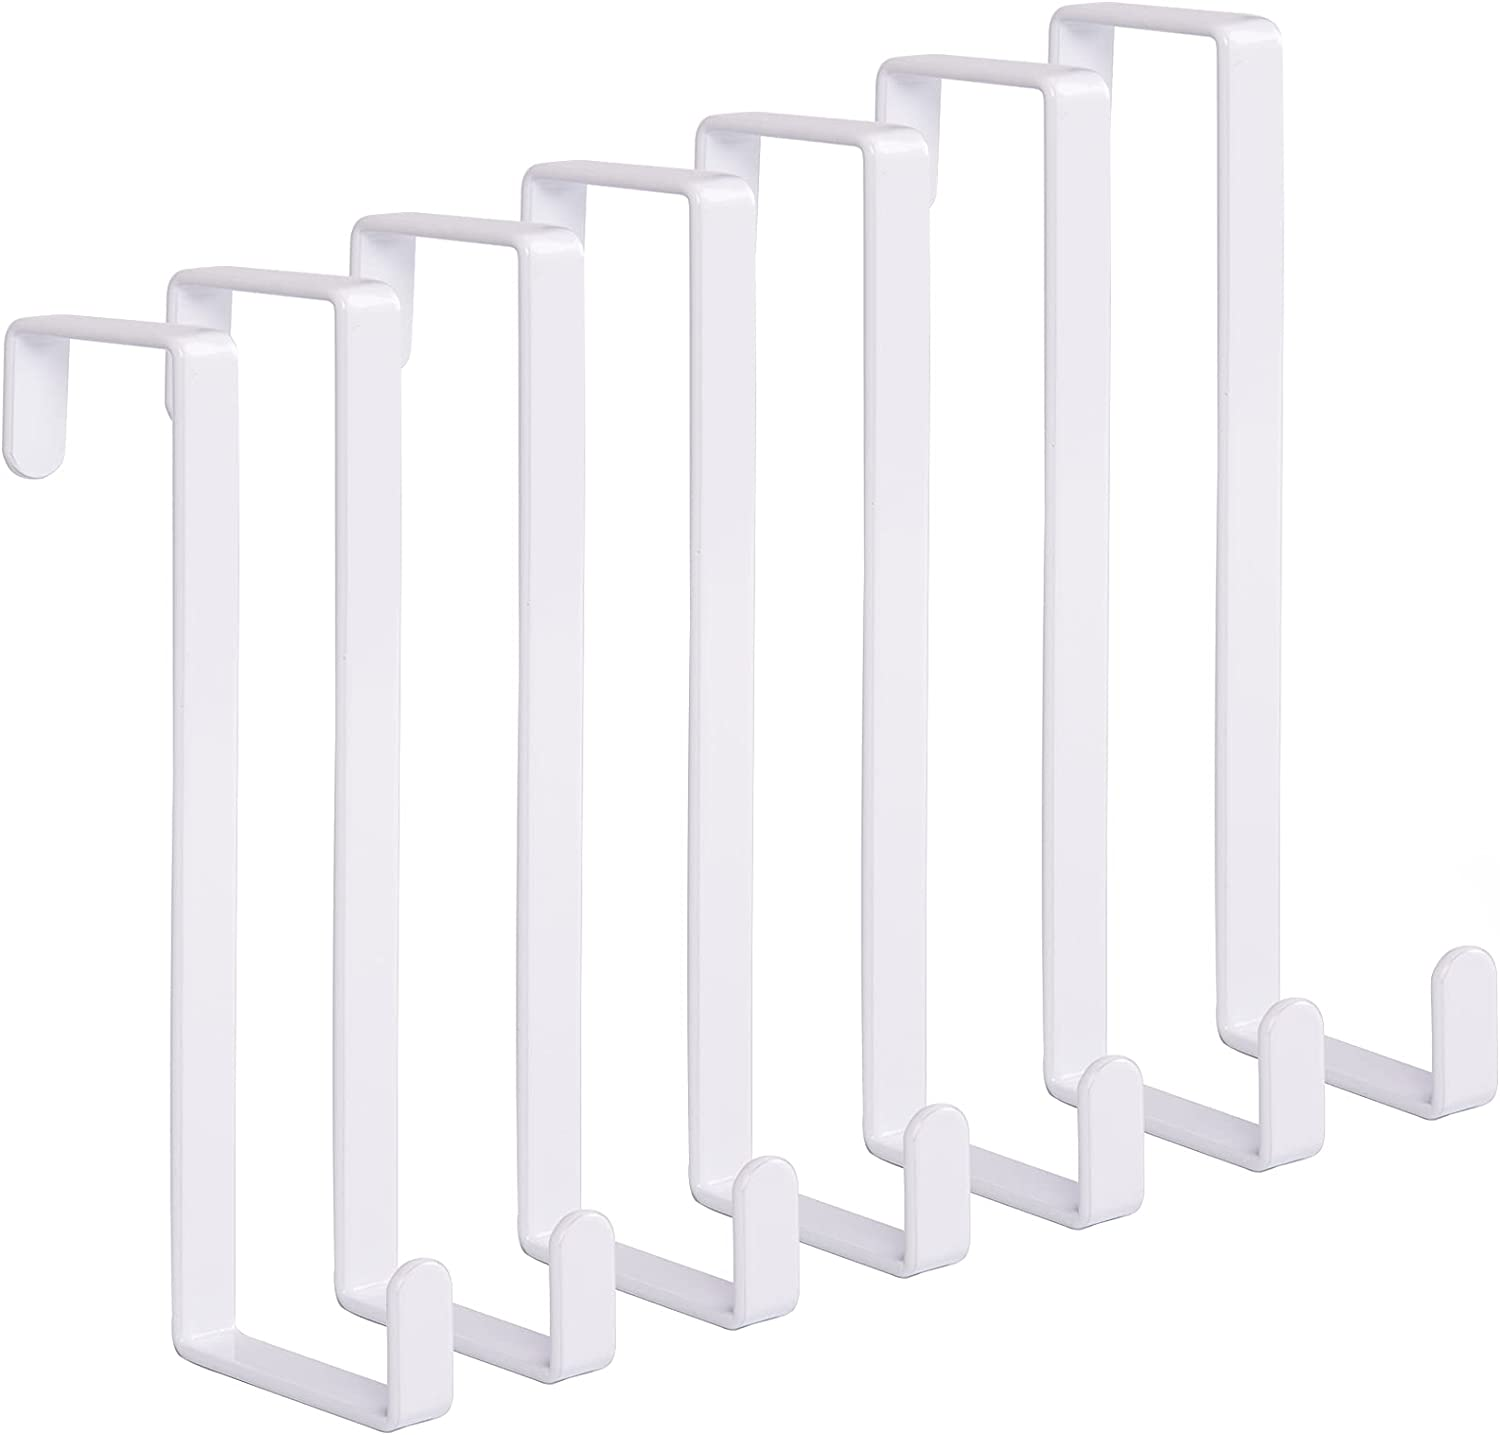 Same day shipping Woillion Over the Award-winning store Door Hooks for Metal Sturdy 7Packs Clothes Ov